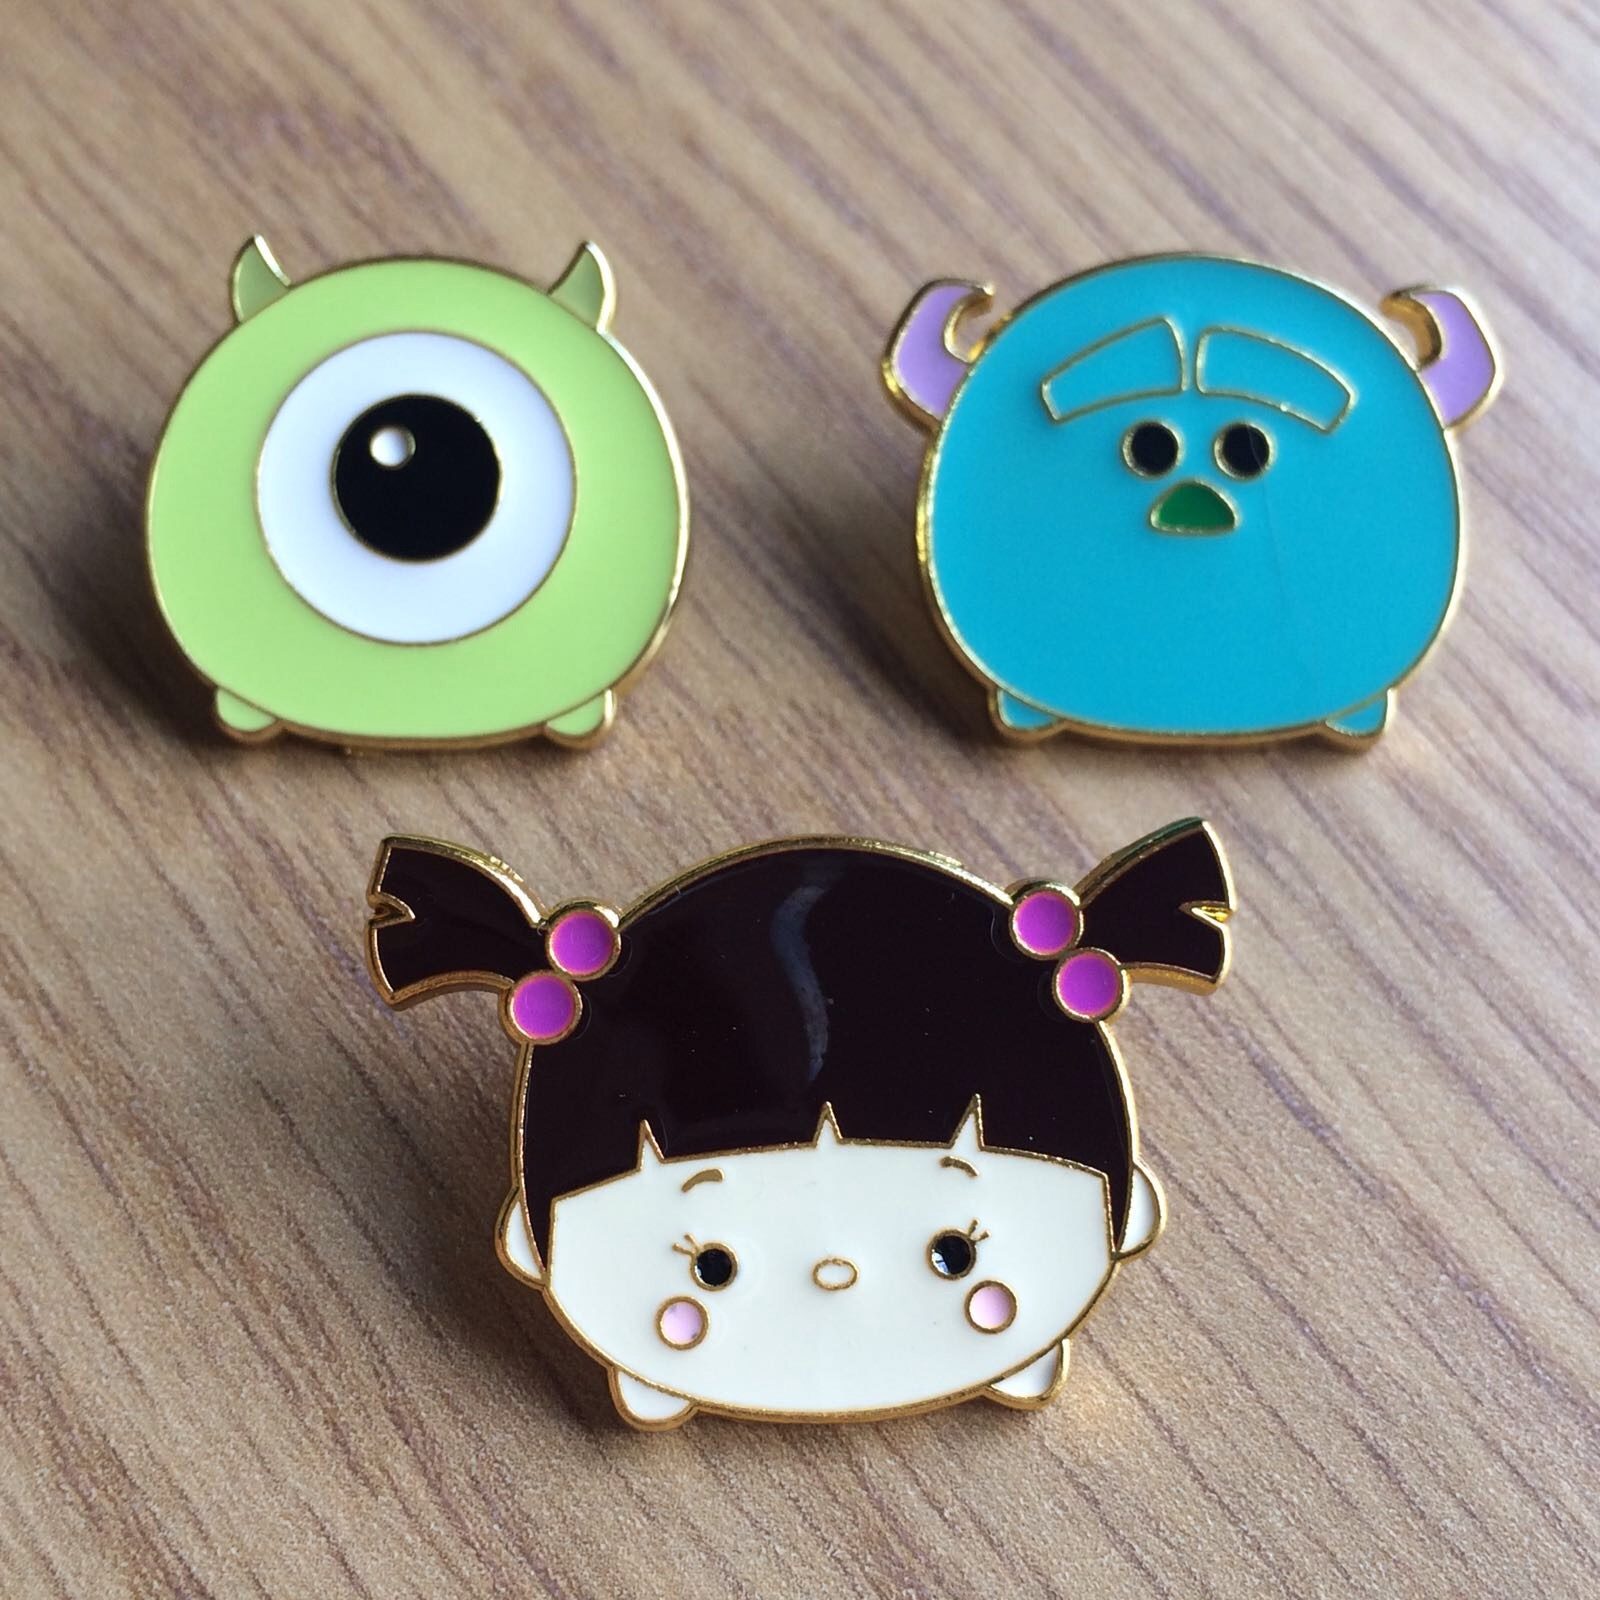 Monsters Inc Tsum Tsum pins